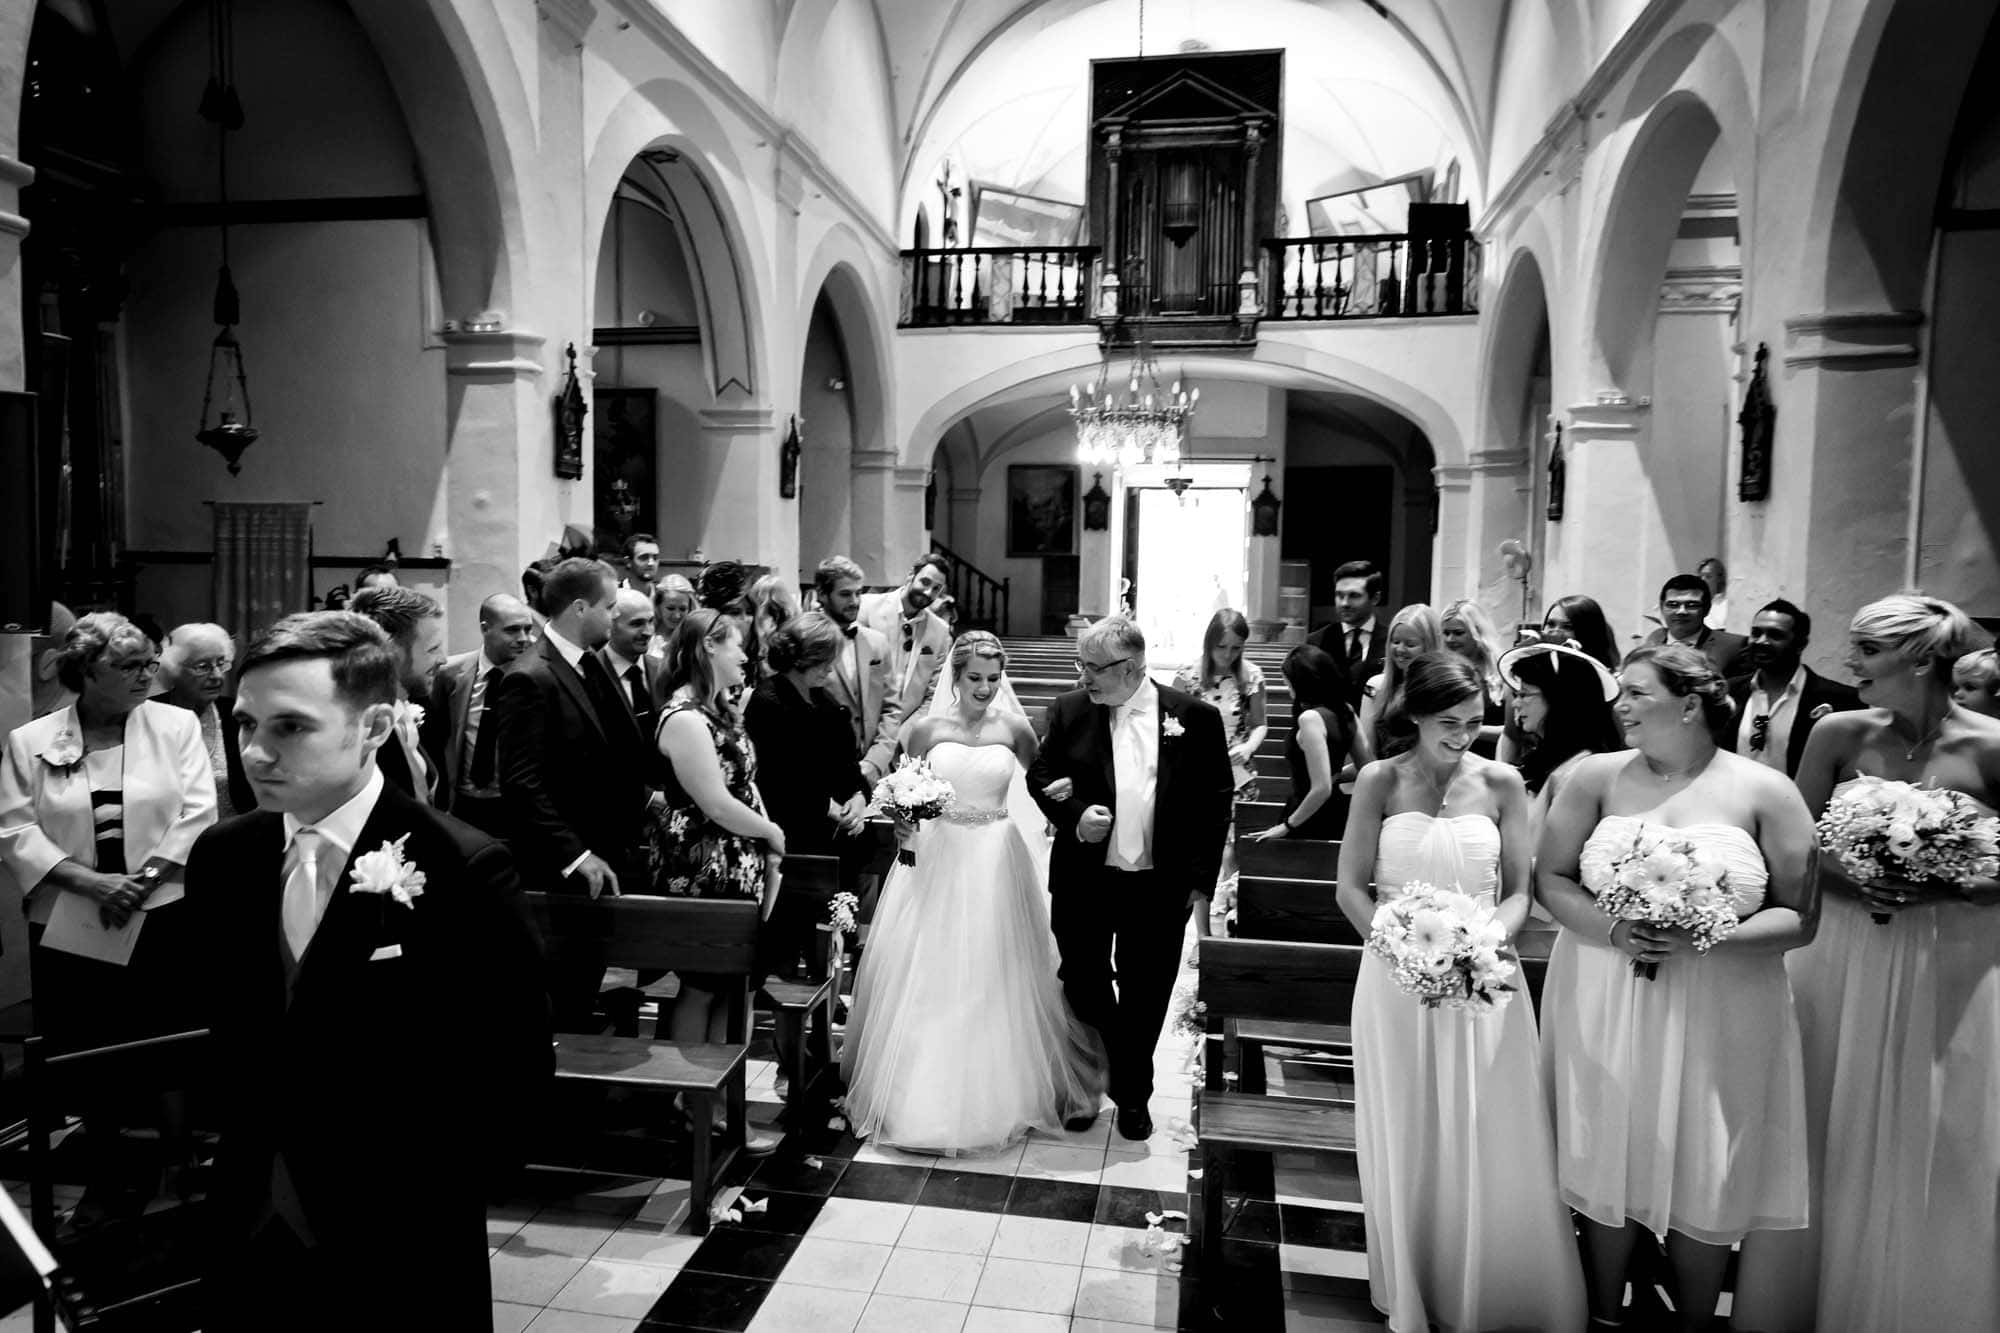 The bride approaches the groom in the church in Fornalutx